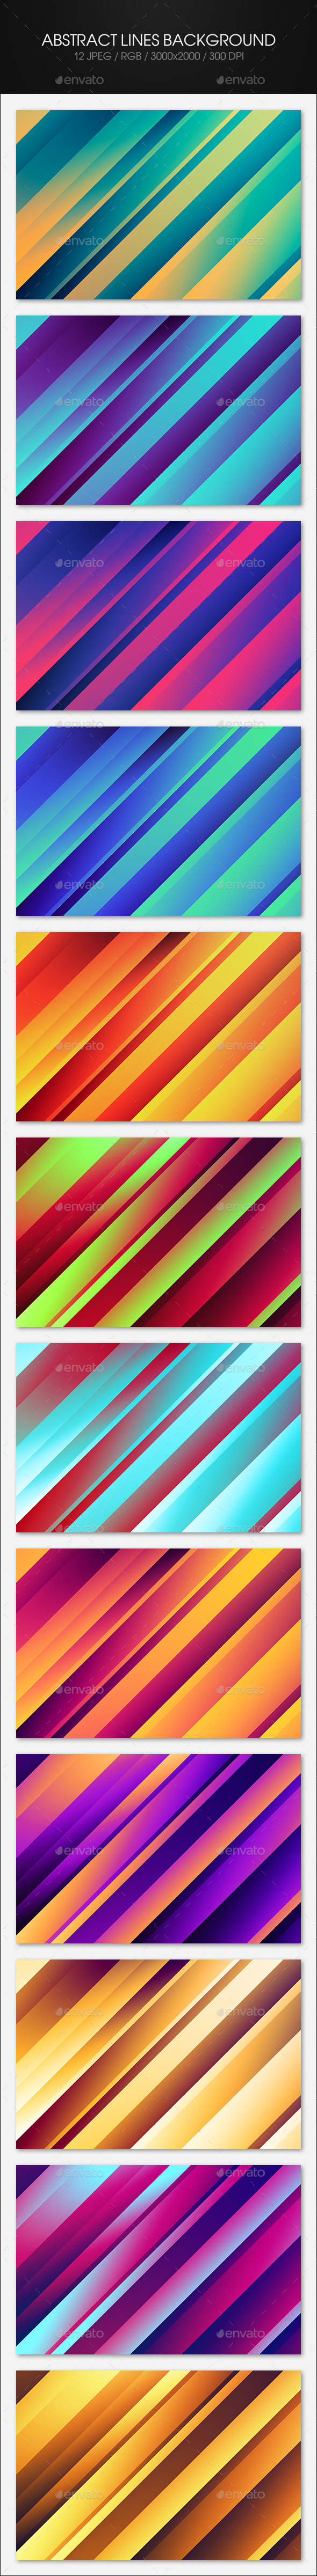 Abstract Lines Background - Abstract Backgrounds